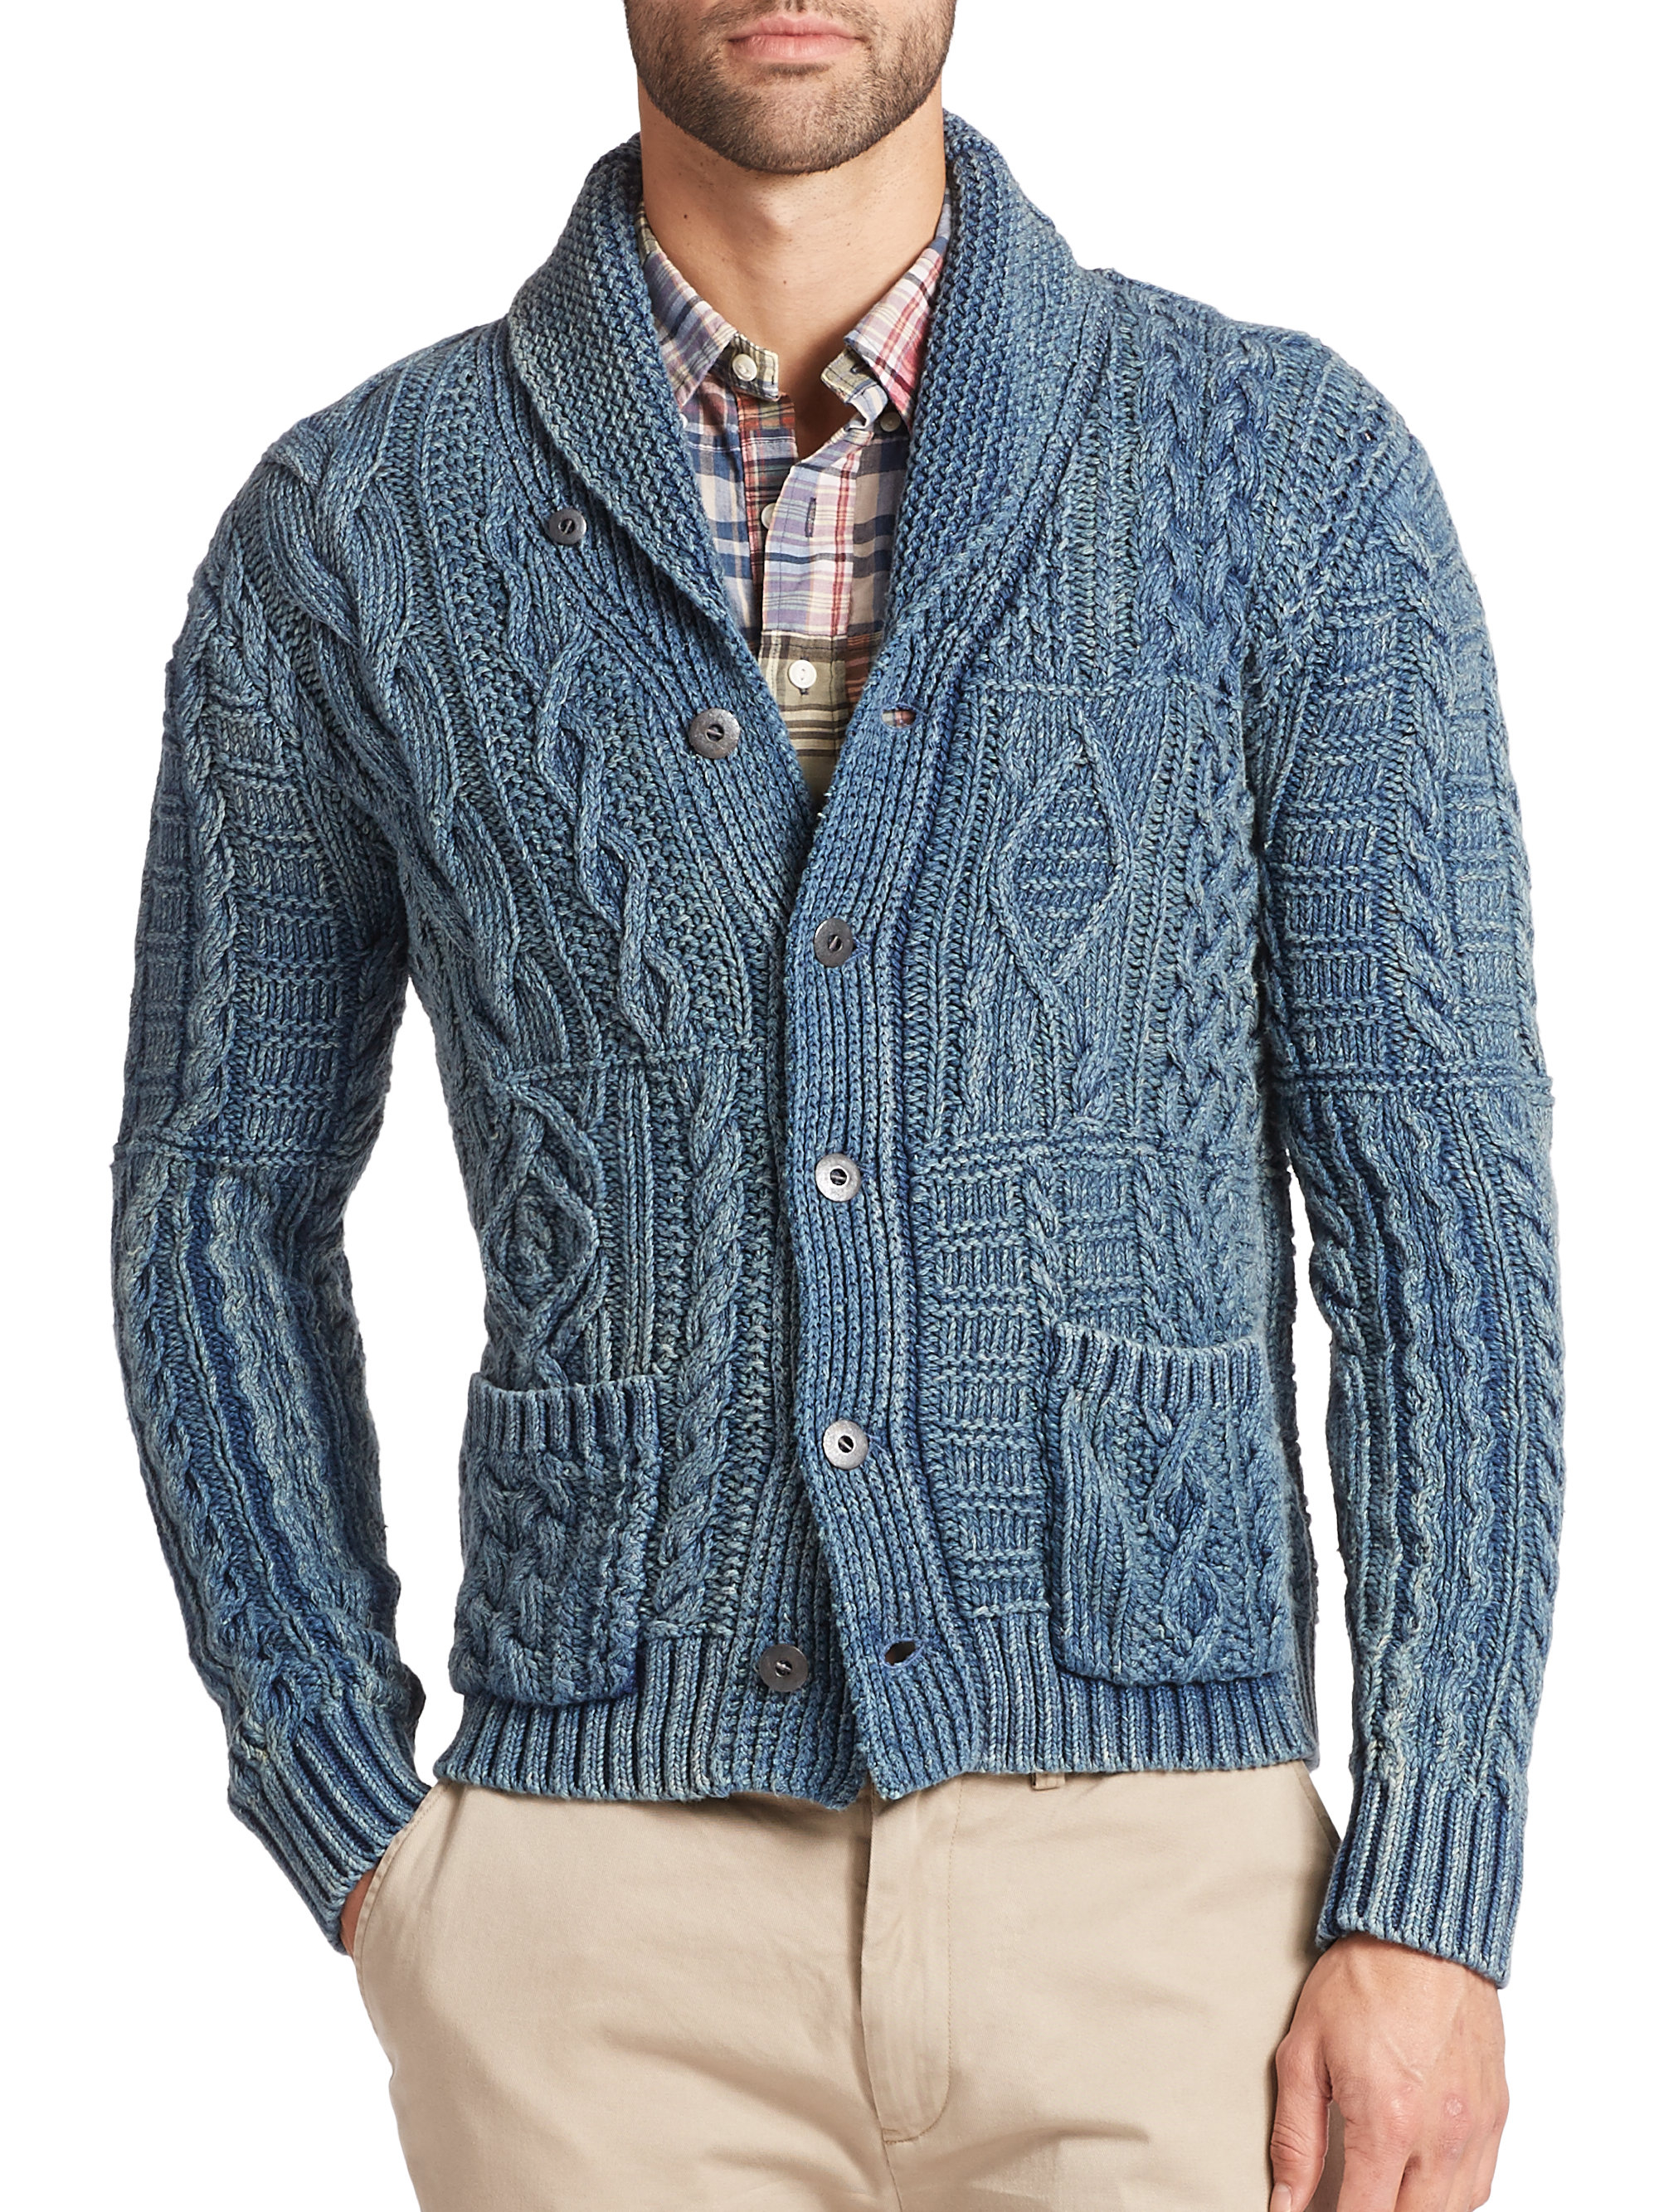 Lyst Polo Ralph Lauren Cable Knit Shawl Cardigan In Green For Men